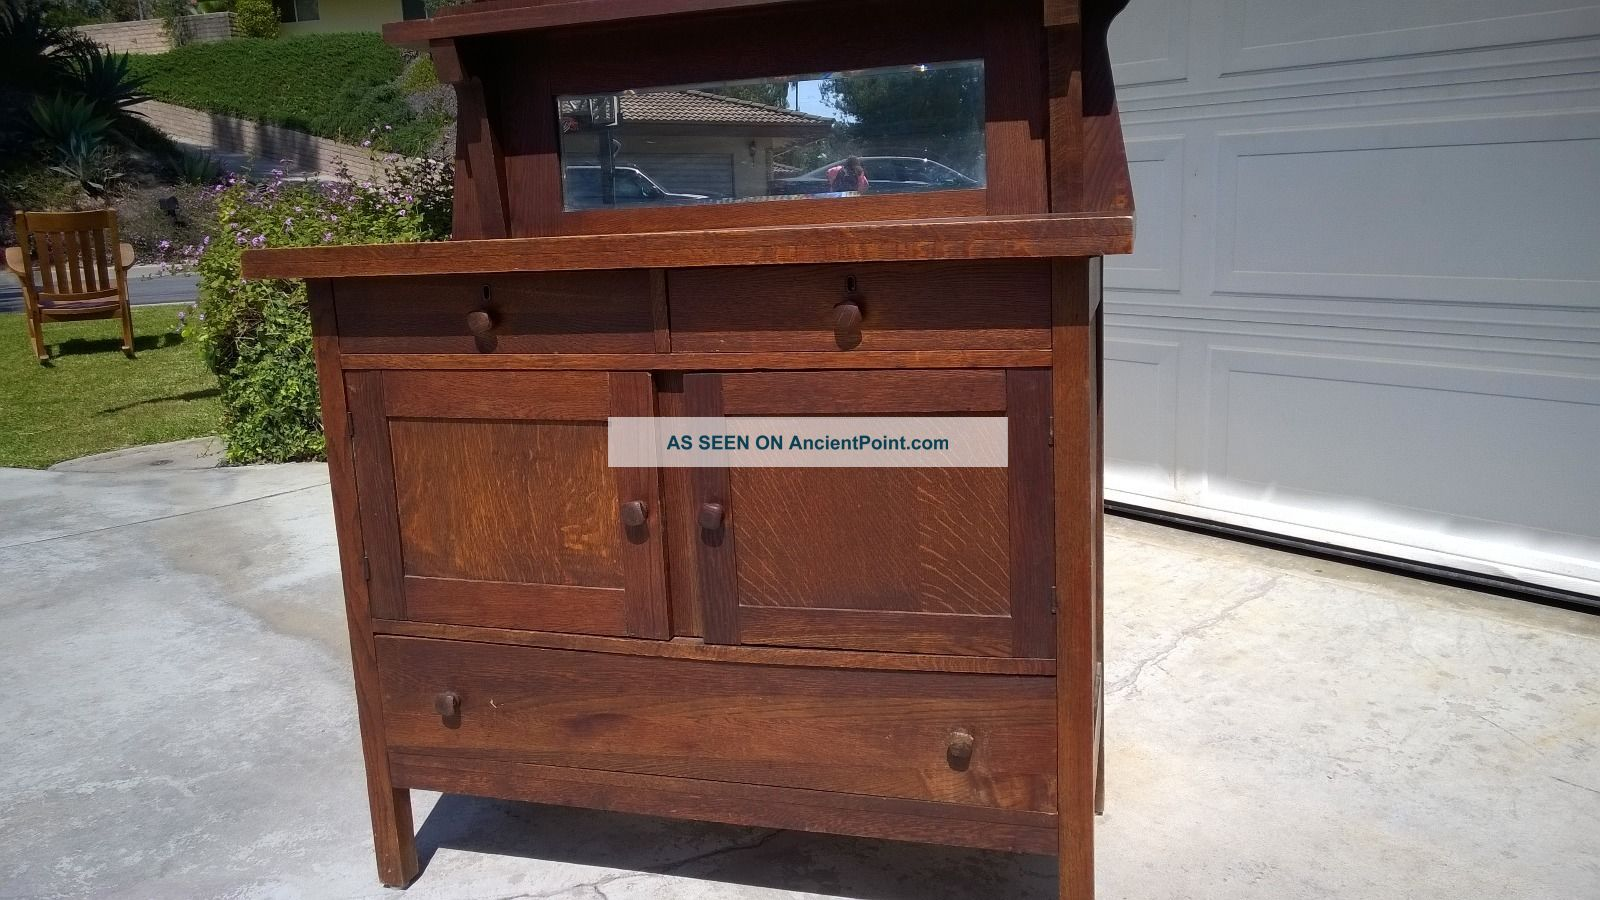 Antique American Mission Oak Arts & Crafts Server Buffet Craftsman Cabinet 1900-1950 photo